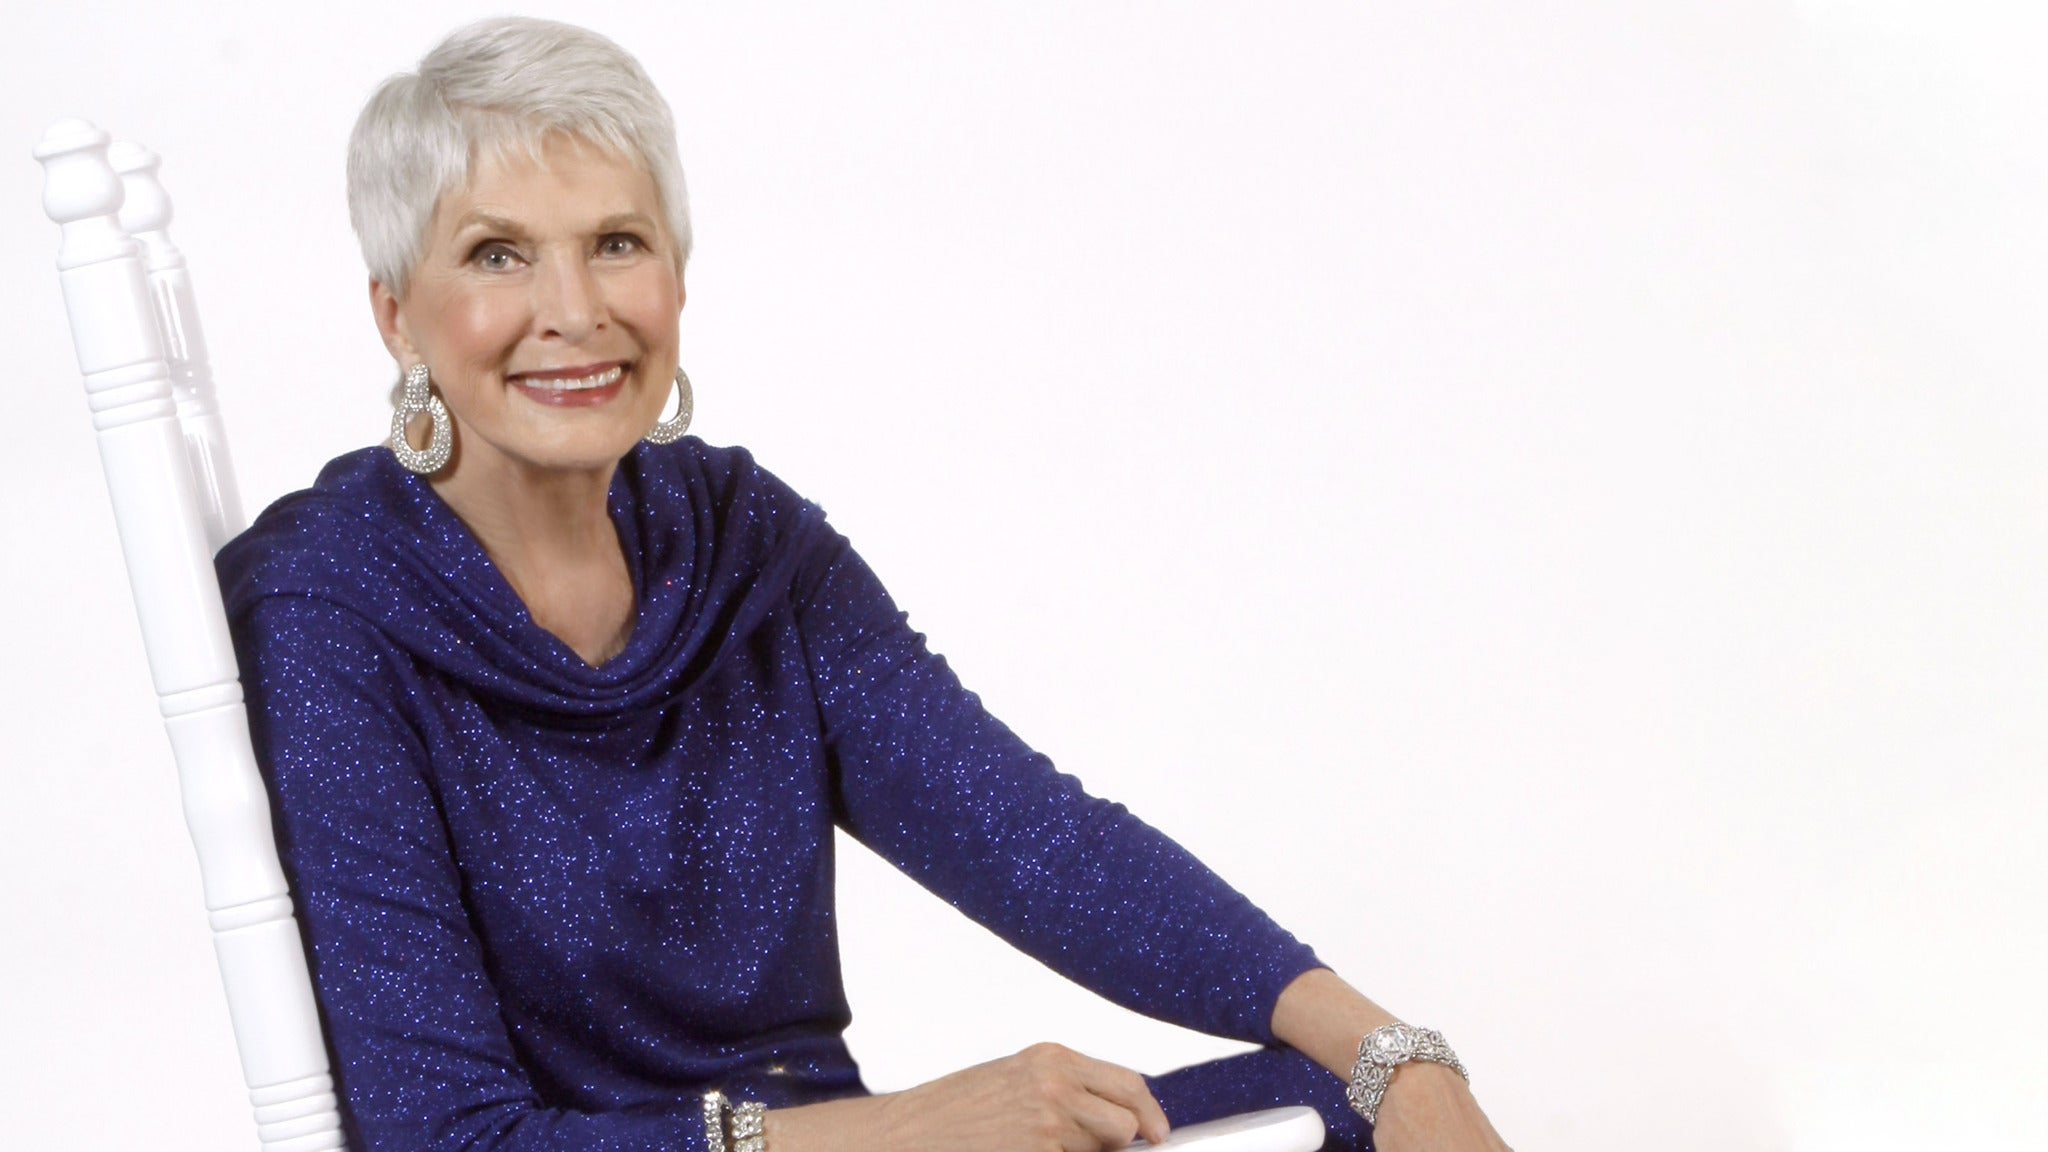 Jeanne Robertson presale password for early tickets in Indianapolis